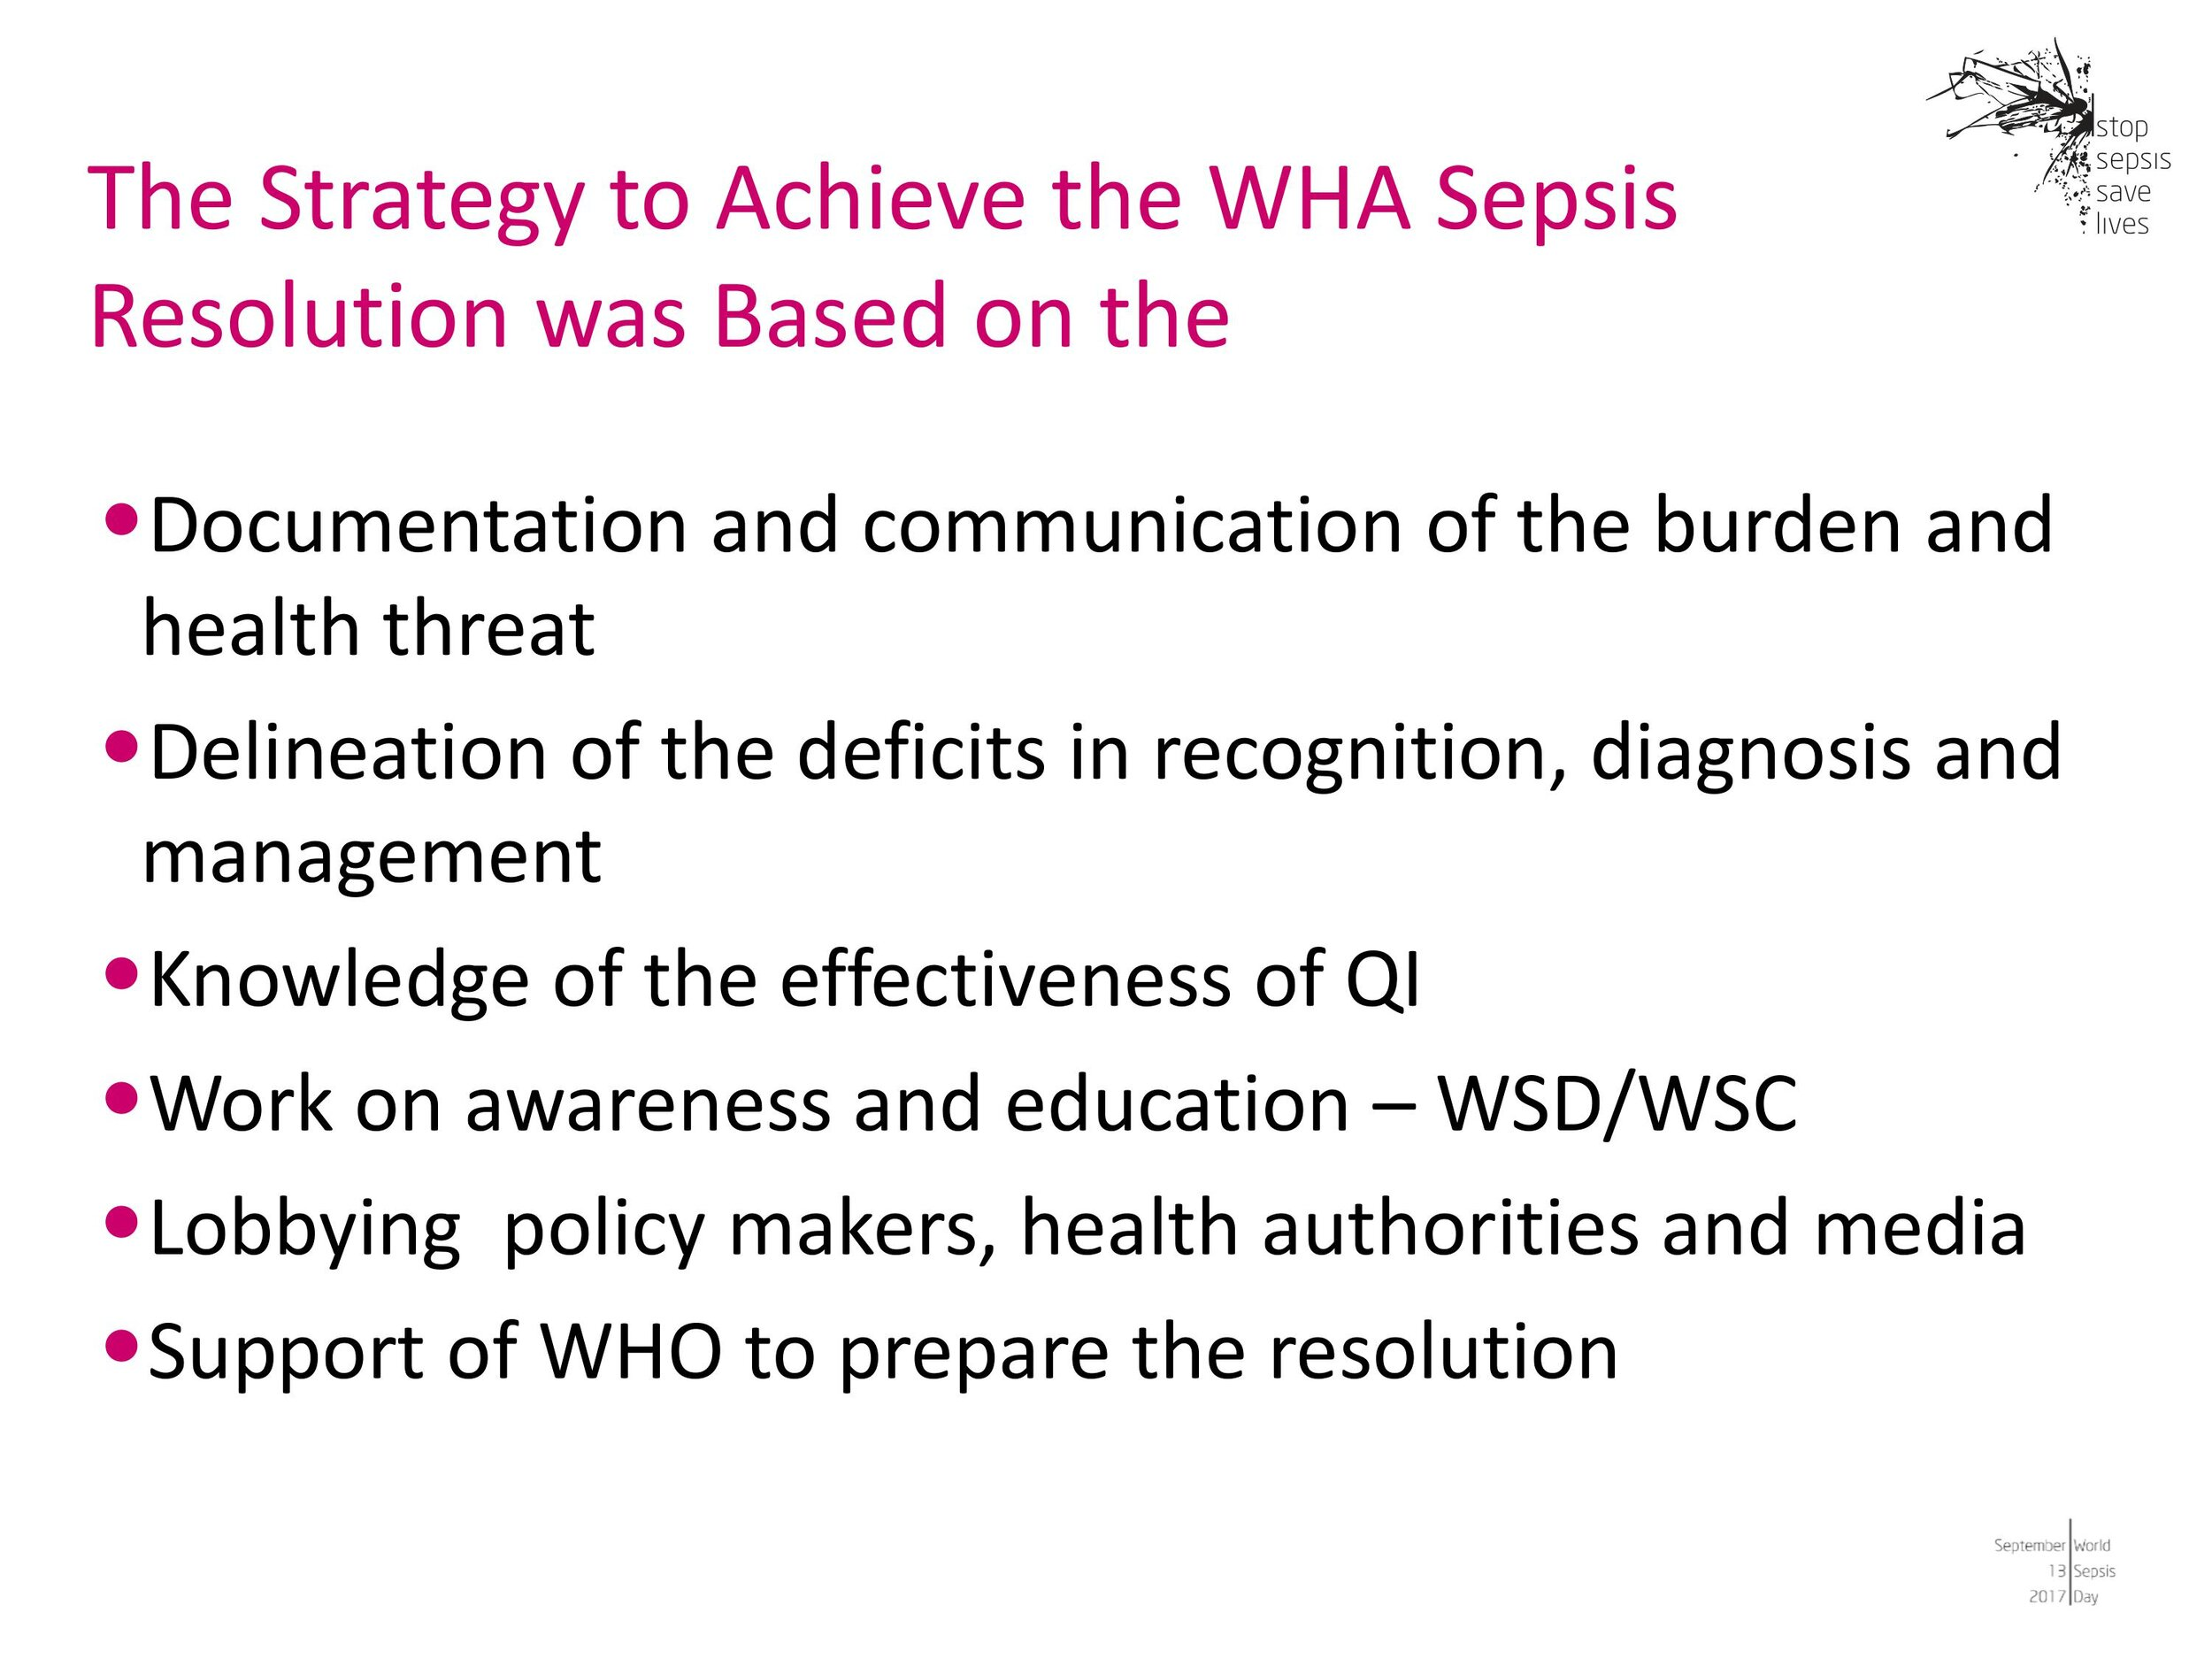 GSA Strategy and Achievements WCICCM 2019_2.jpg